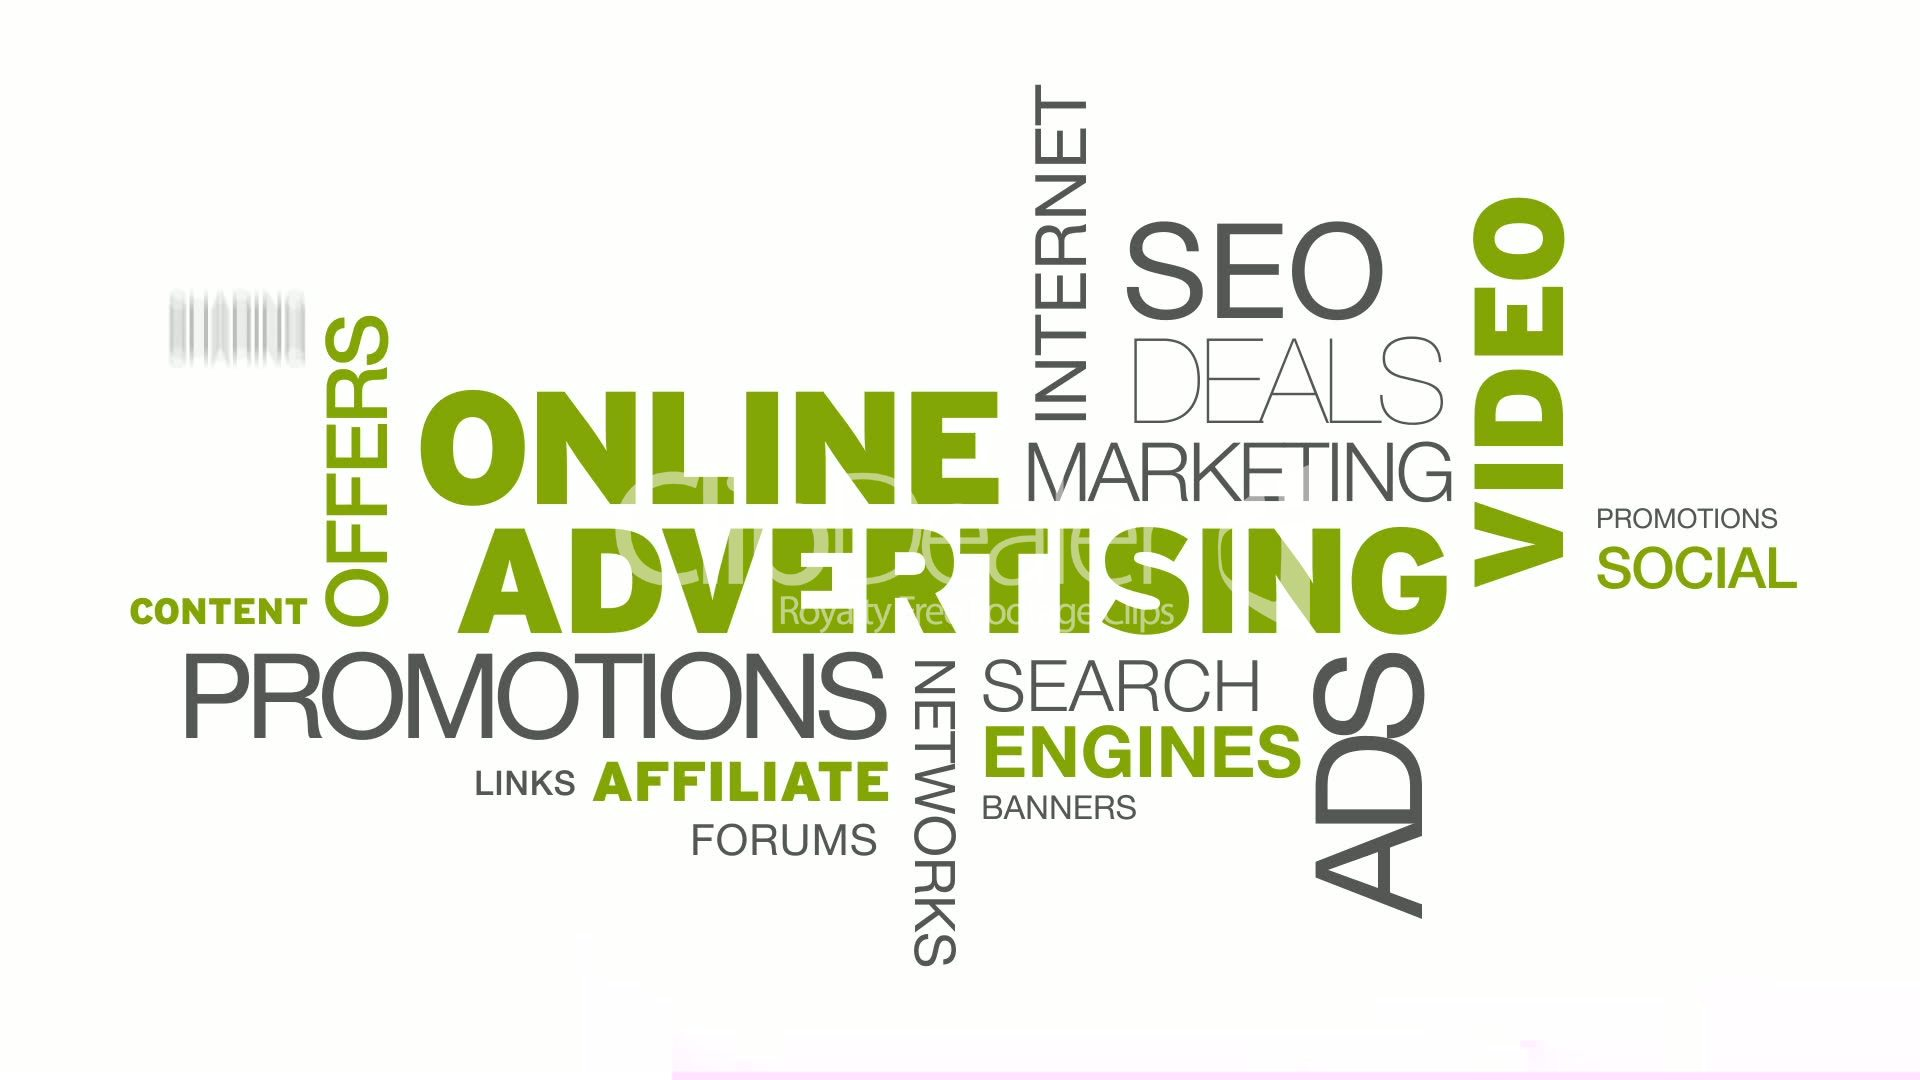 5 Top Reasons Why Display Advertising will Overtake Search in 2015 OnlineMagz